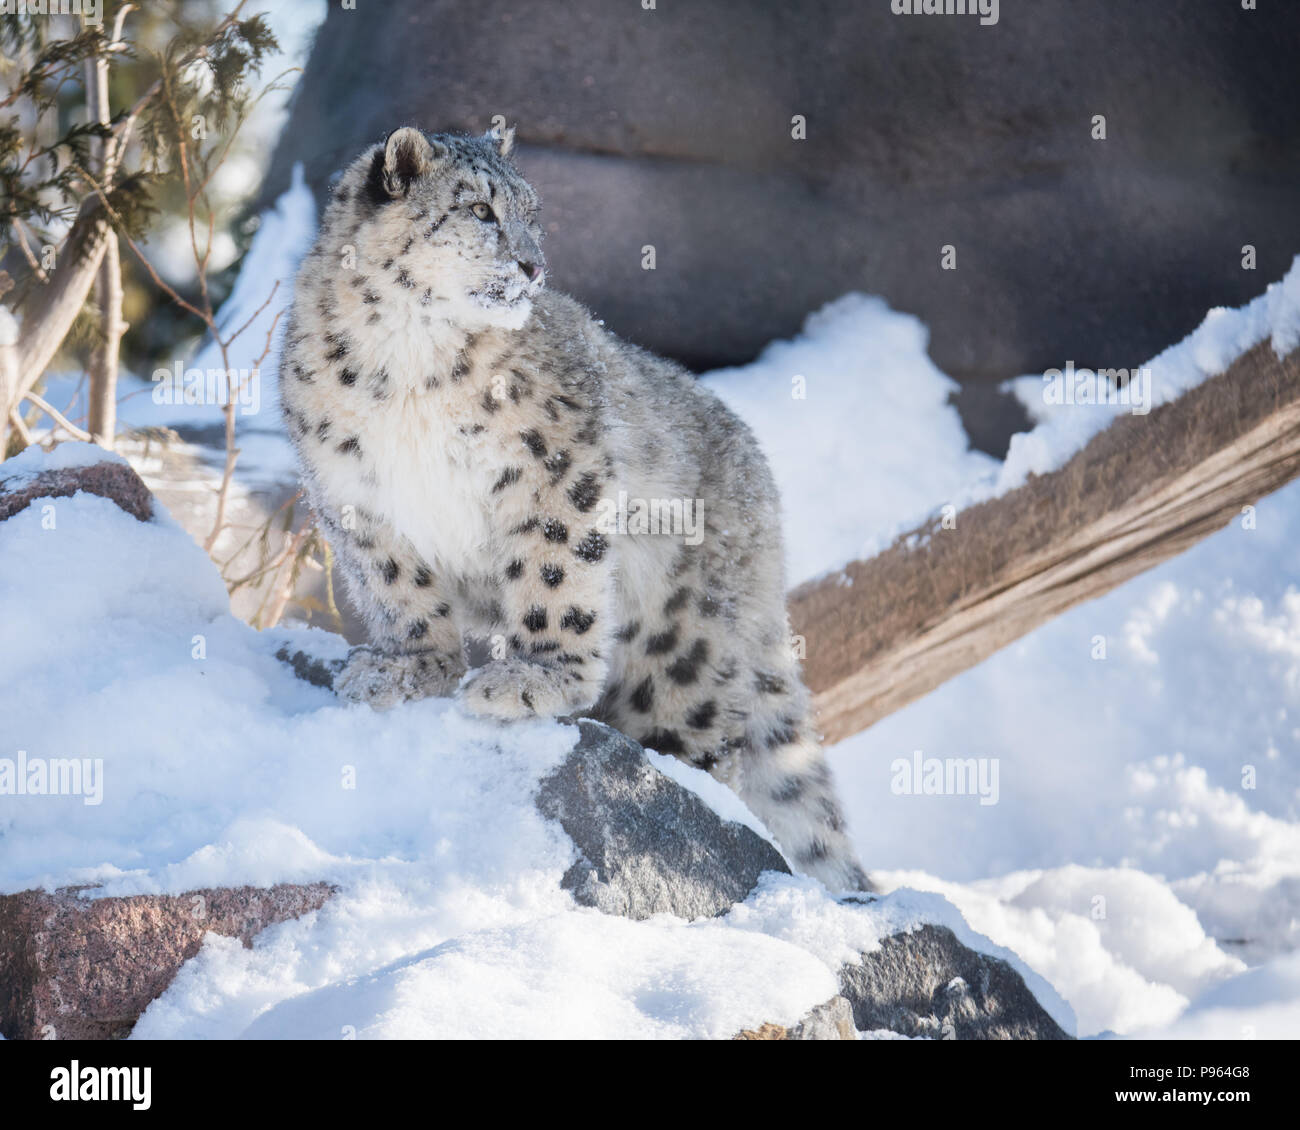 A snow leopard cub explores its snow-filled habitat at The Toronto Zoo, where it is part of a captive breeding program for this vulnerable species. - Stock Image